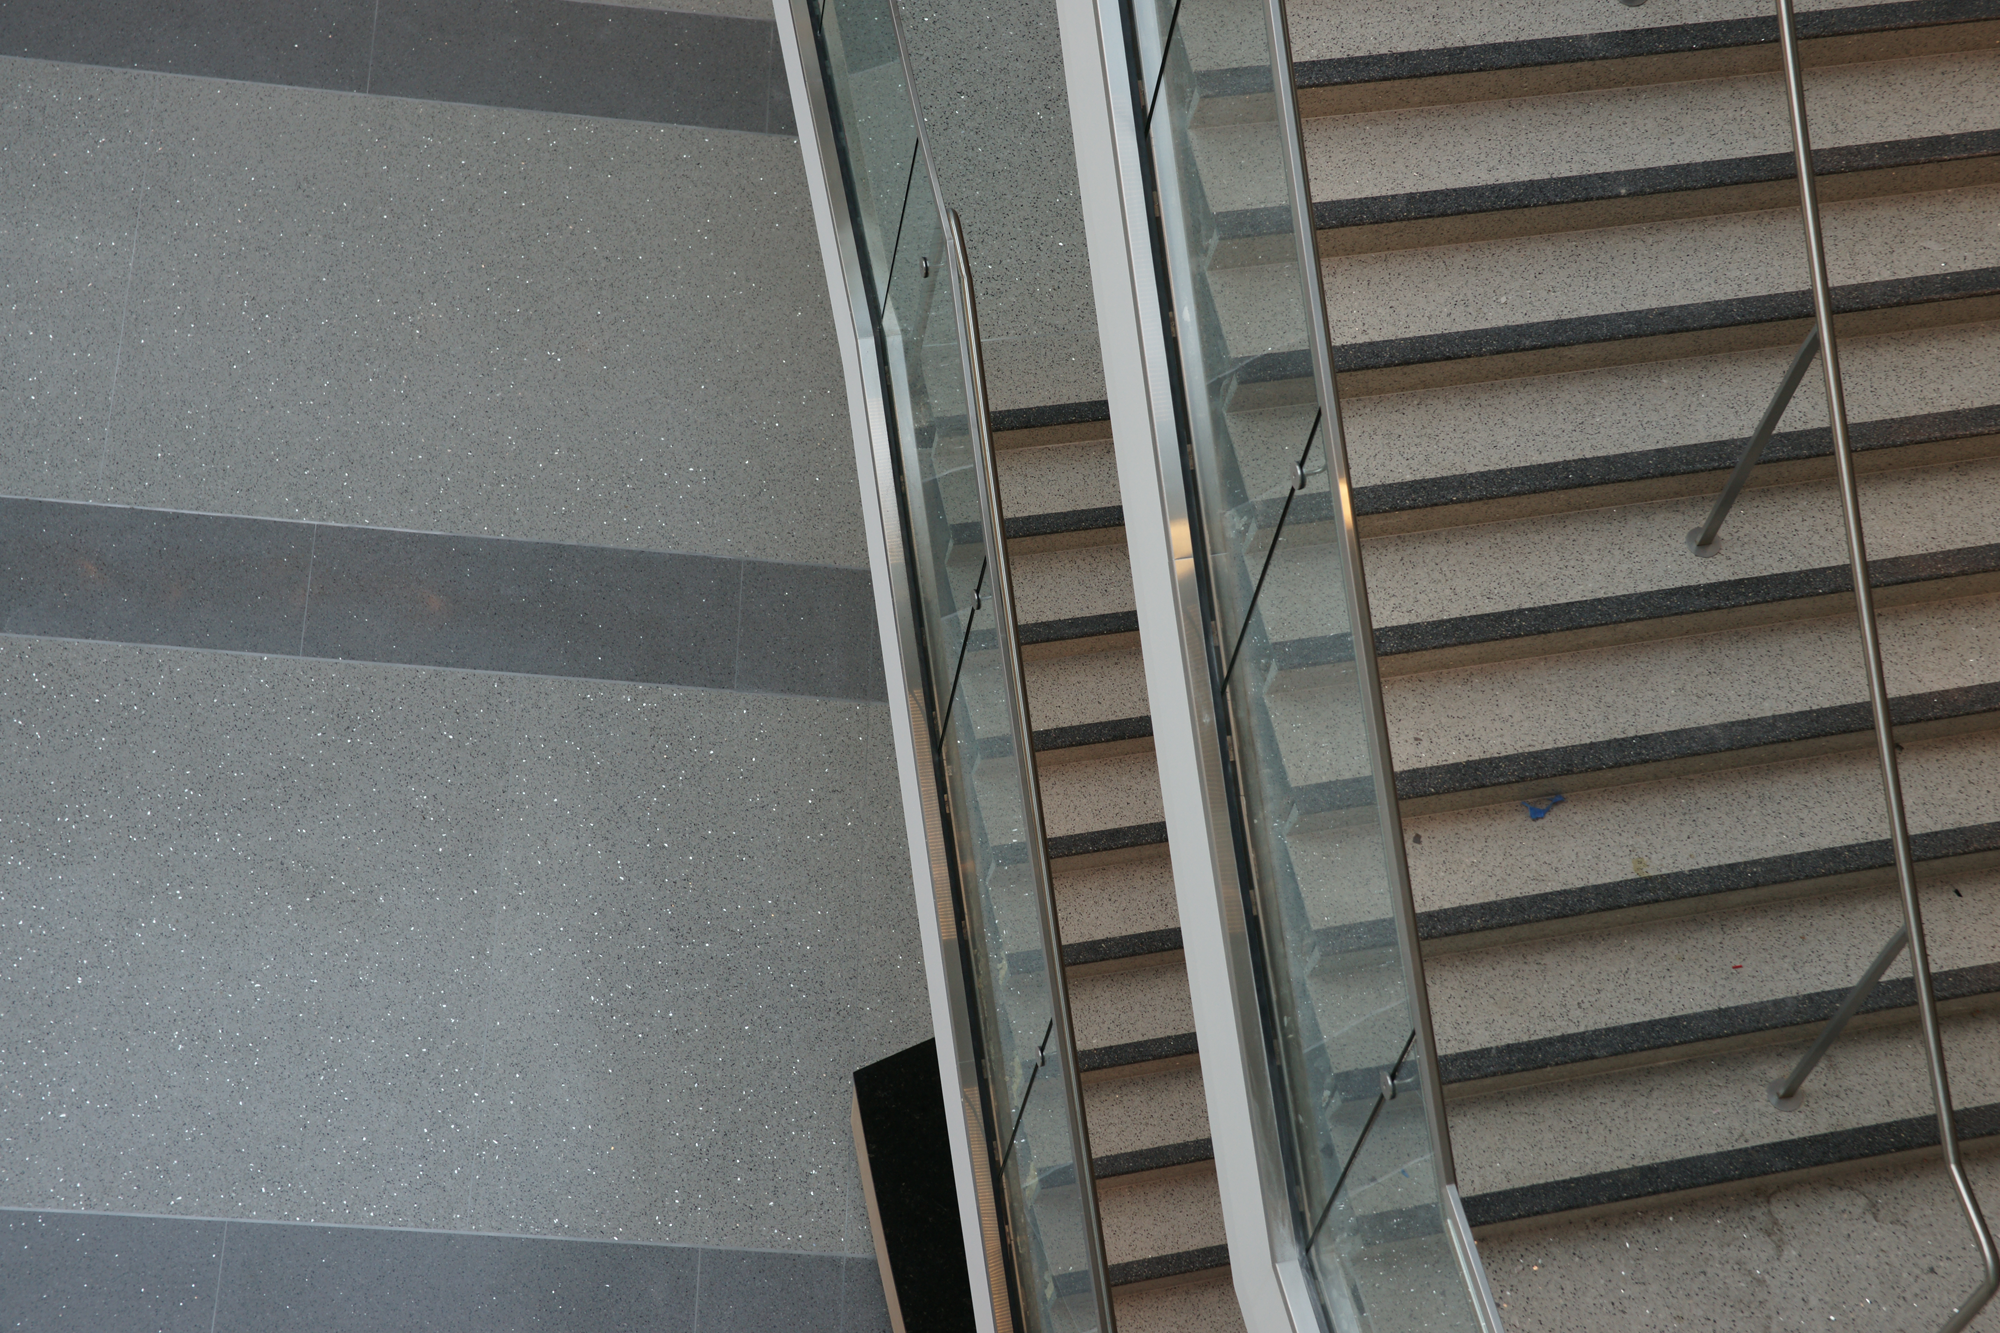 Precast Terrazzo Stairs and Flooring using recycled glass materials